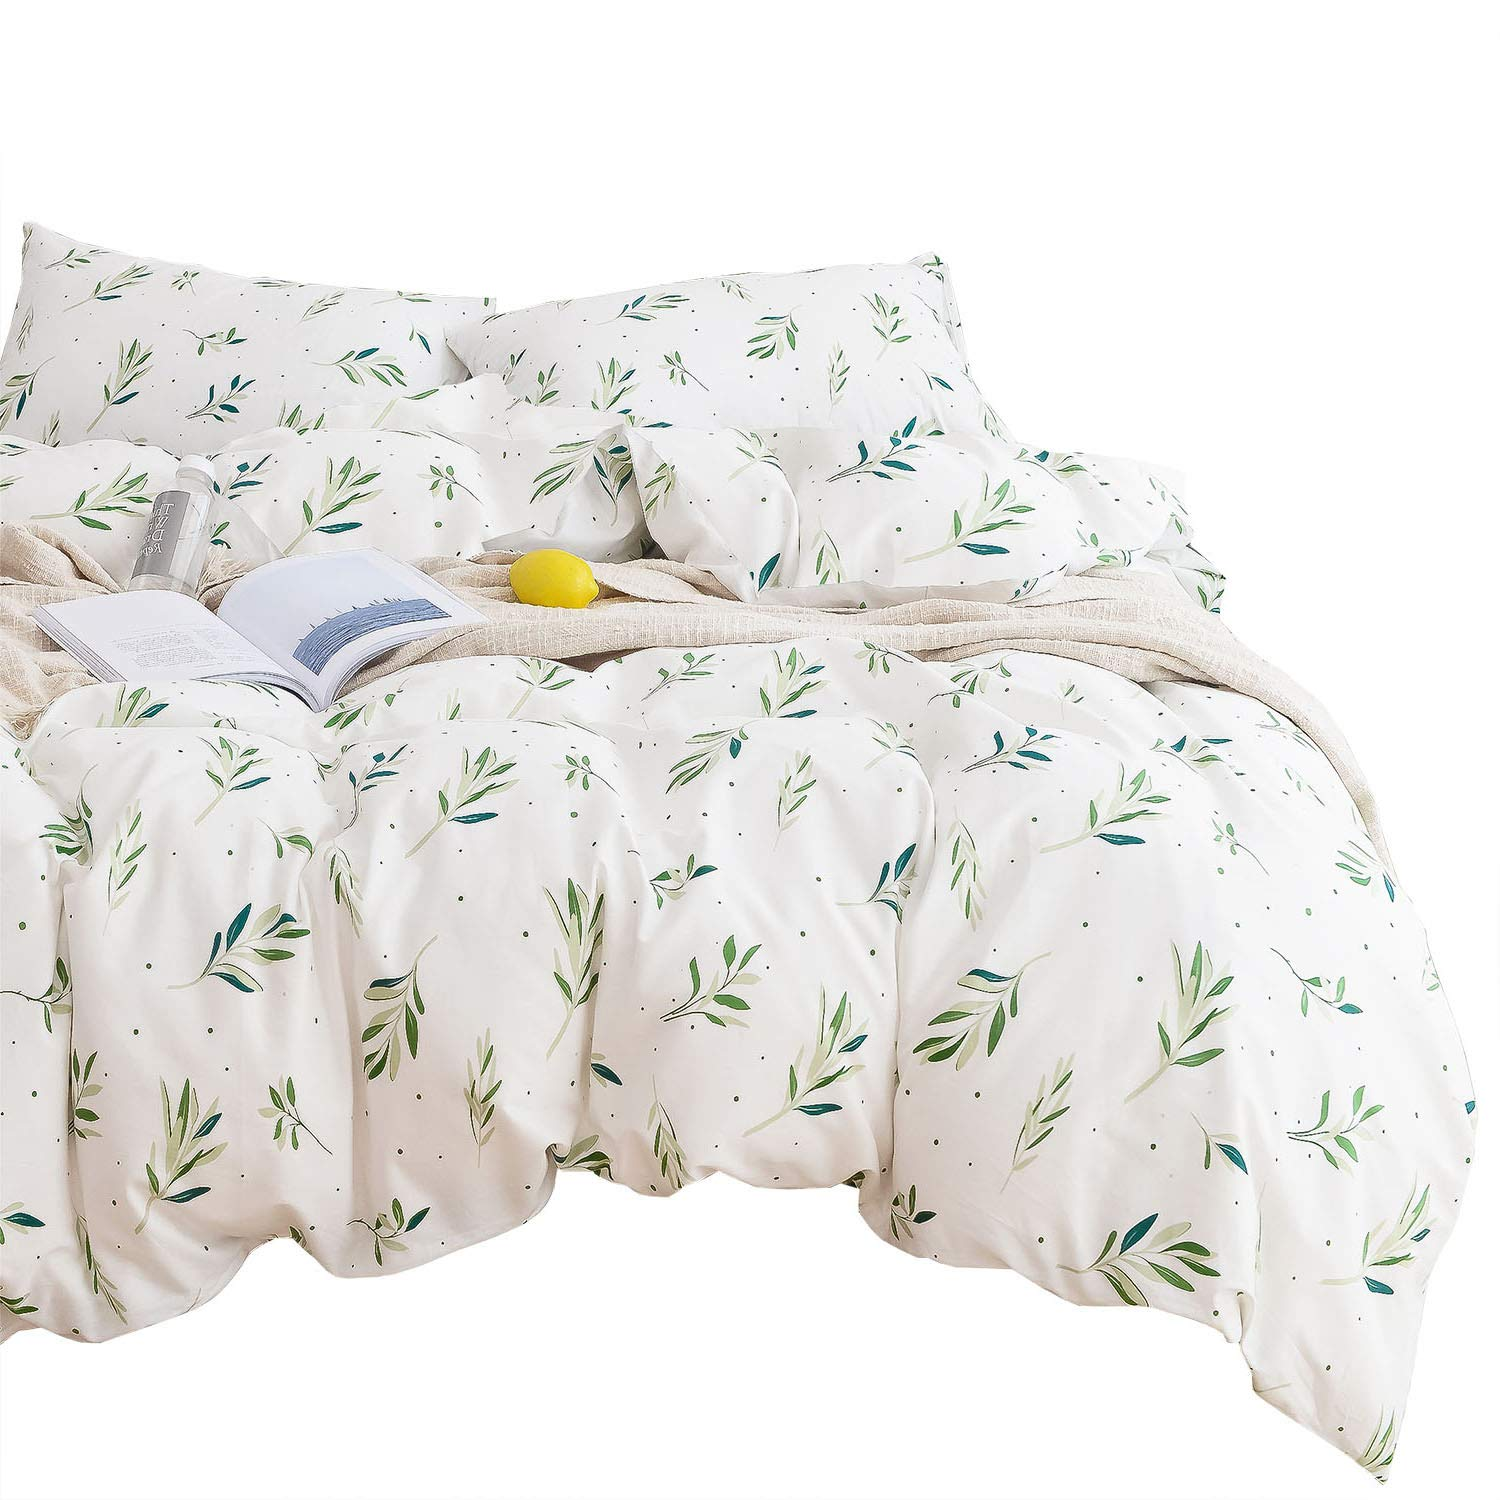 100/% Cotton Bedding with Zipper Closure Green Botanical Plant Leaves and Dots Modern Pattern Printed on White Tree Leaves Duvet Cover Set Wake In Cloud 3pcs, Twin Size